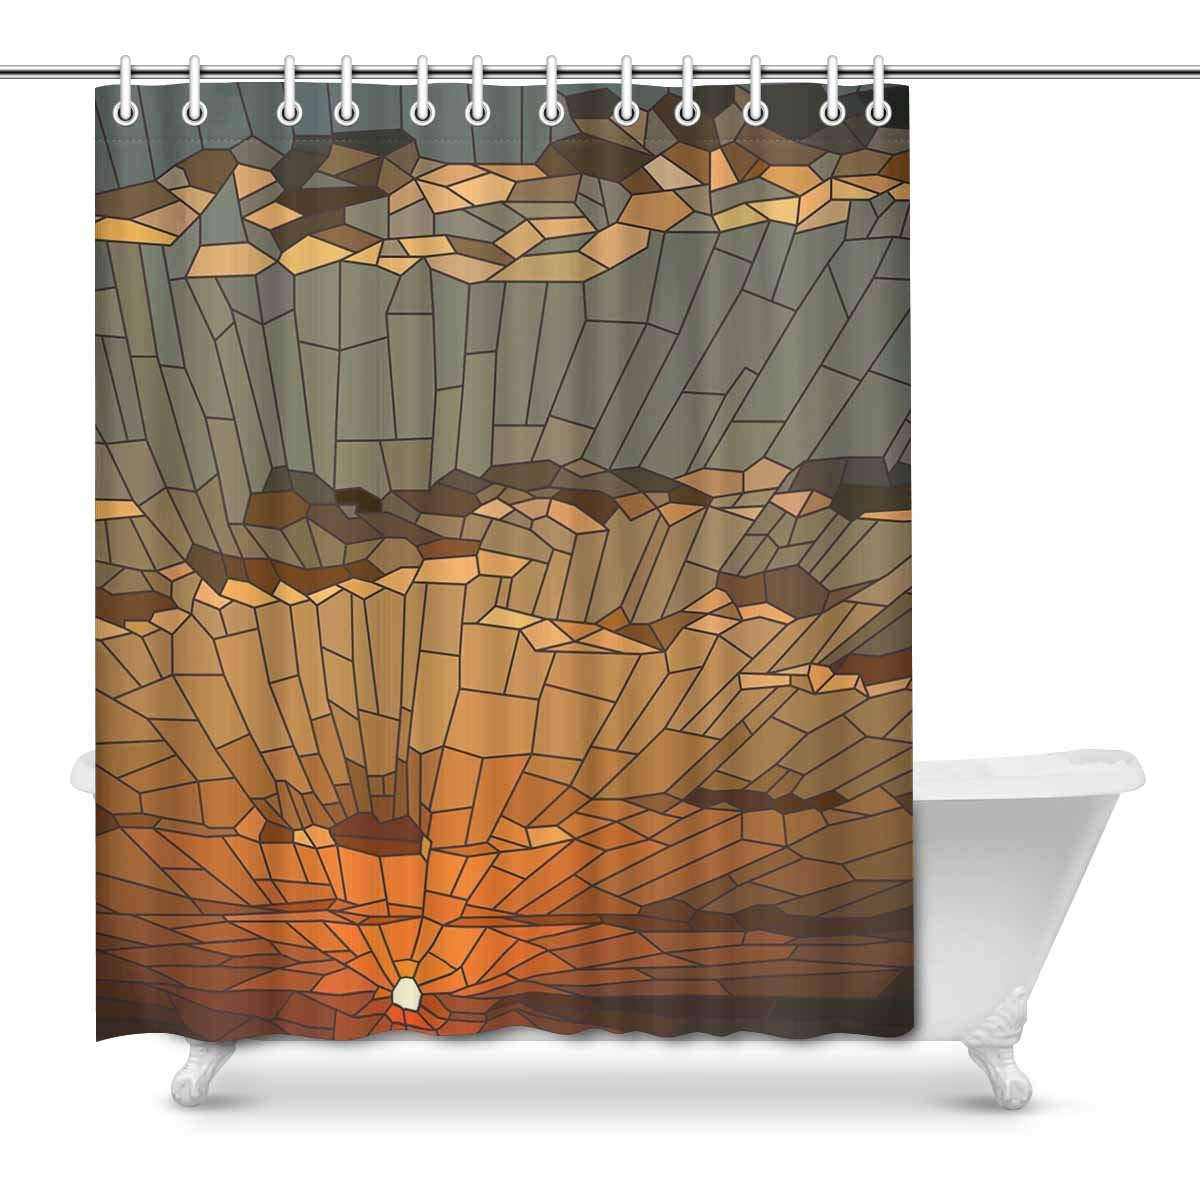 mkhert sunset clouds in stained glass window abstract background house decor shower curtain bathroom decorative bathroom shower curtain set rings